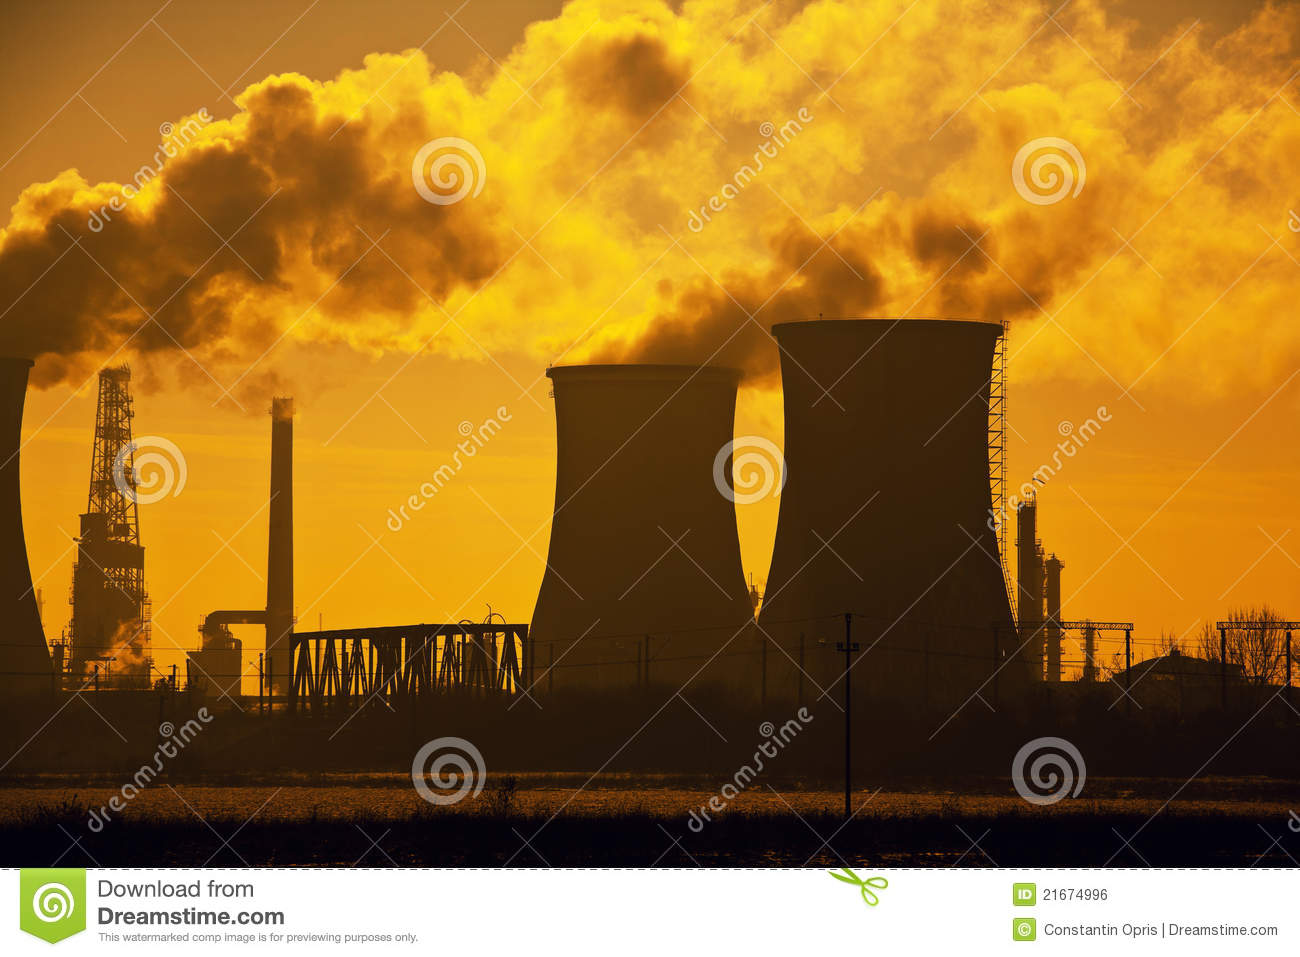 Oil refinery pollution, evacuation towers with smoke, dramatic sky.